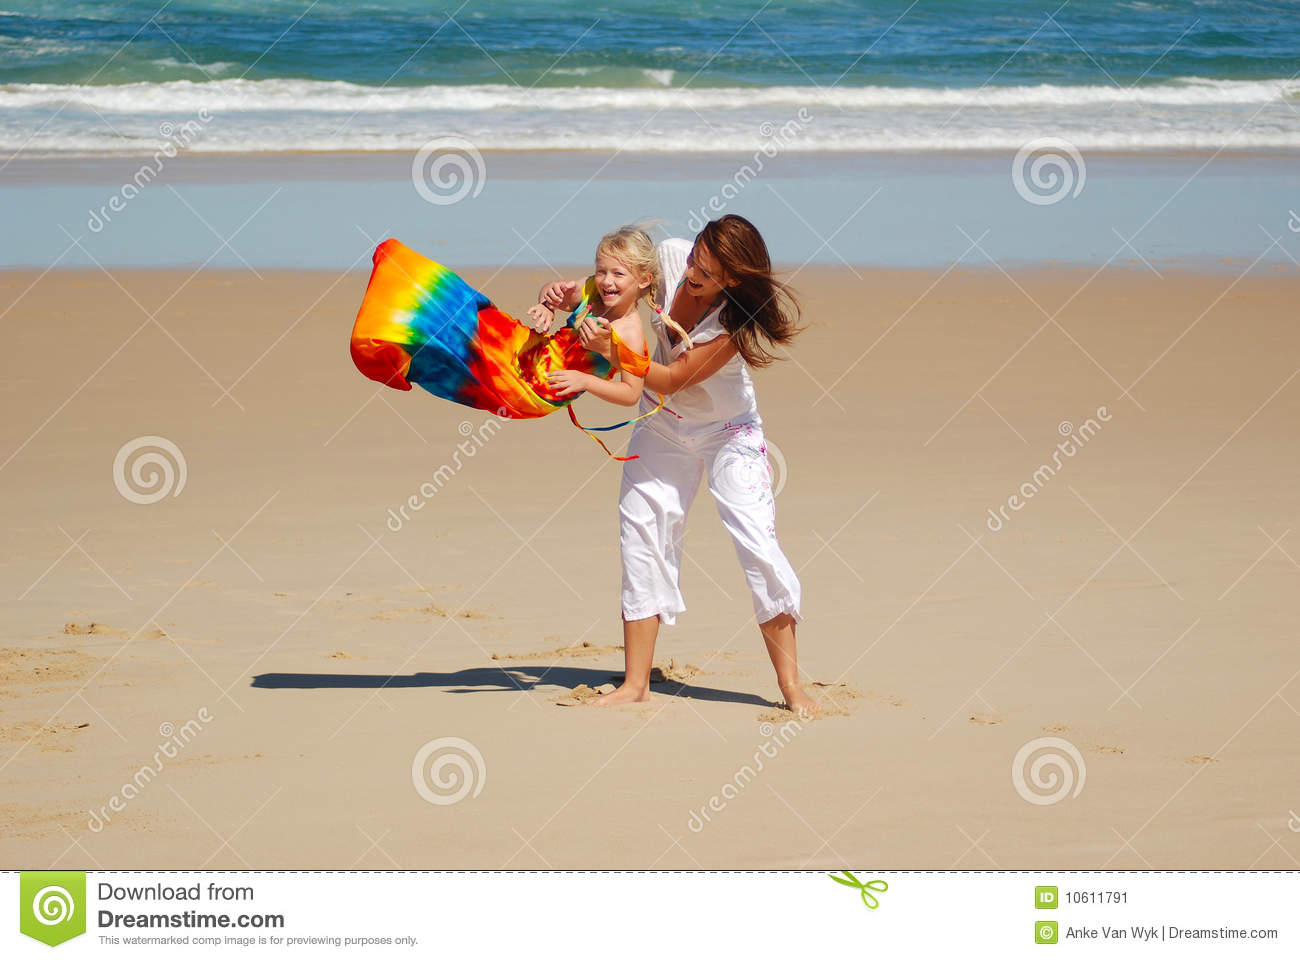 Mom, daughter, beach fun